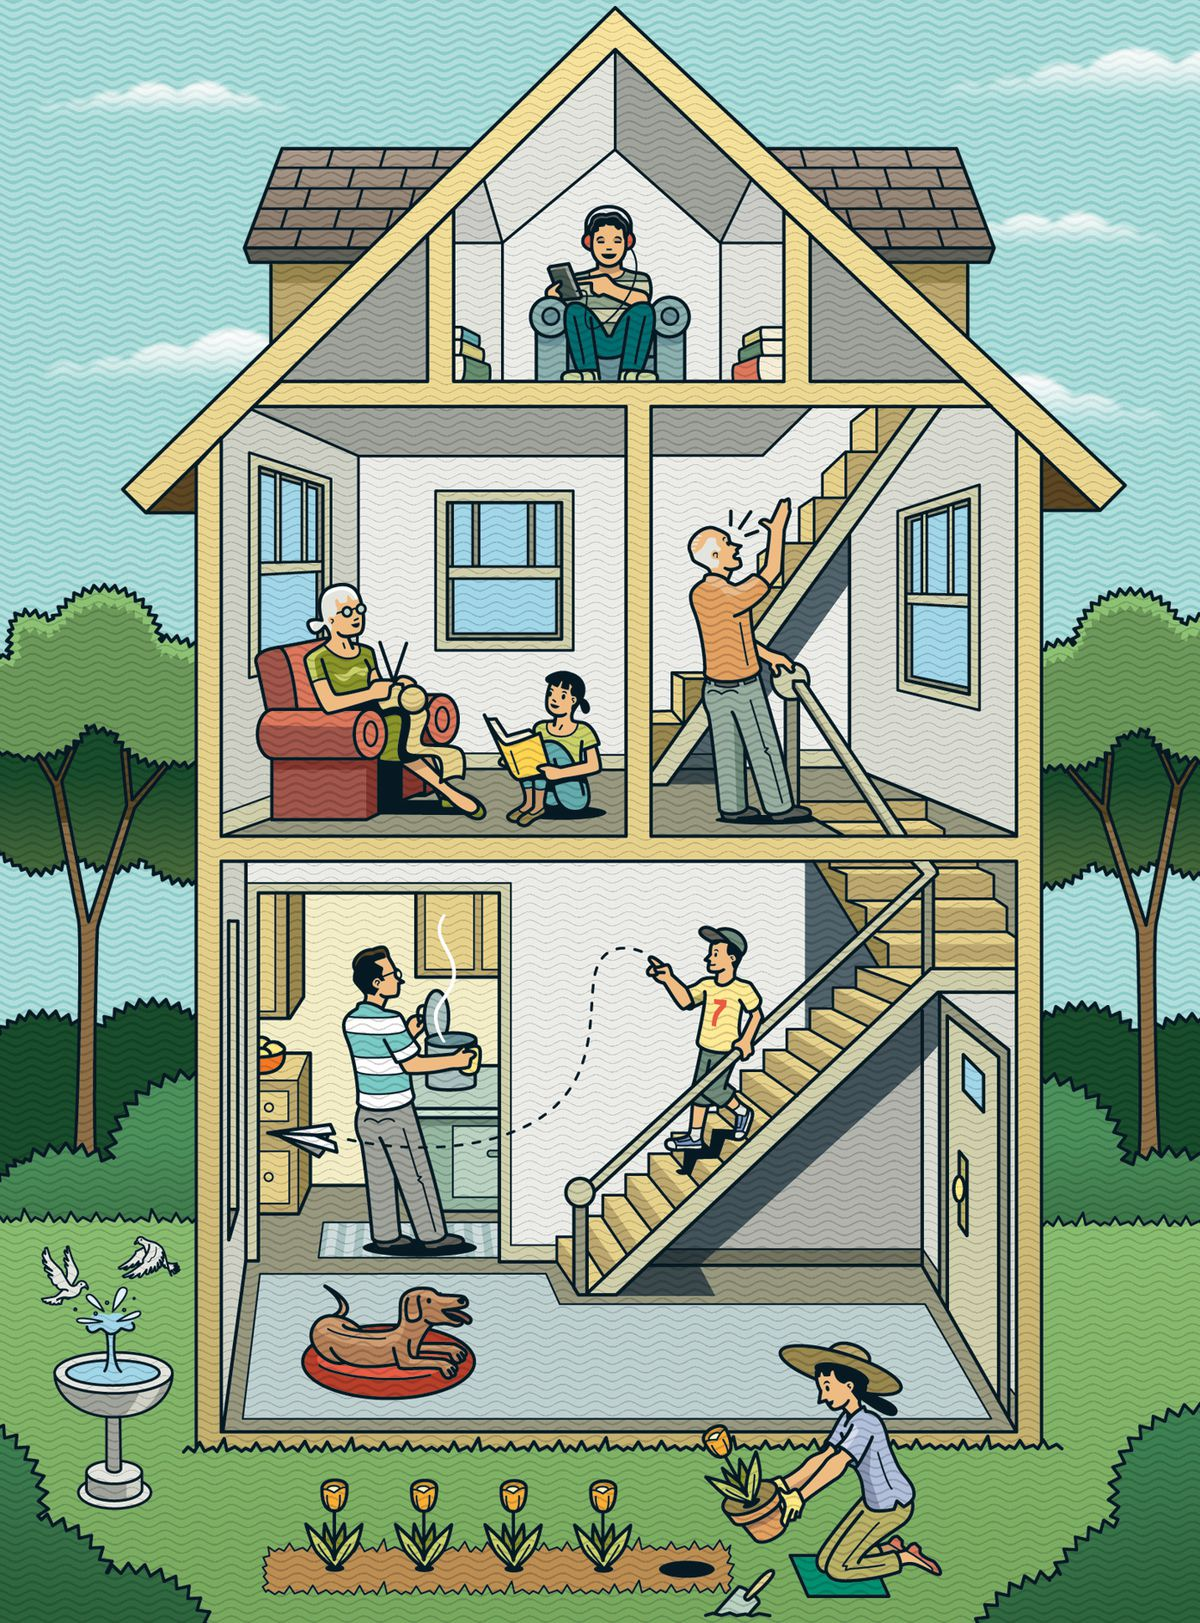 Fall 2021 Home Finances, grandparents/kids in house